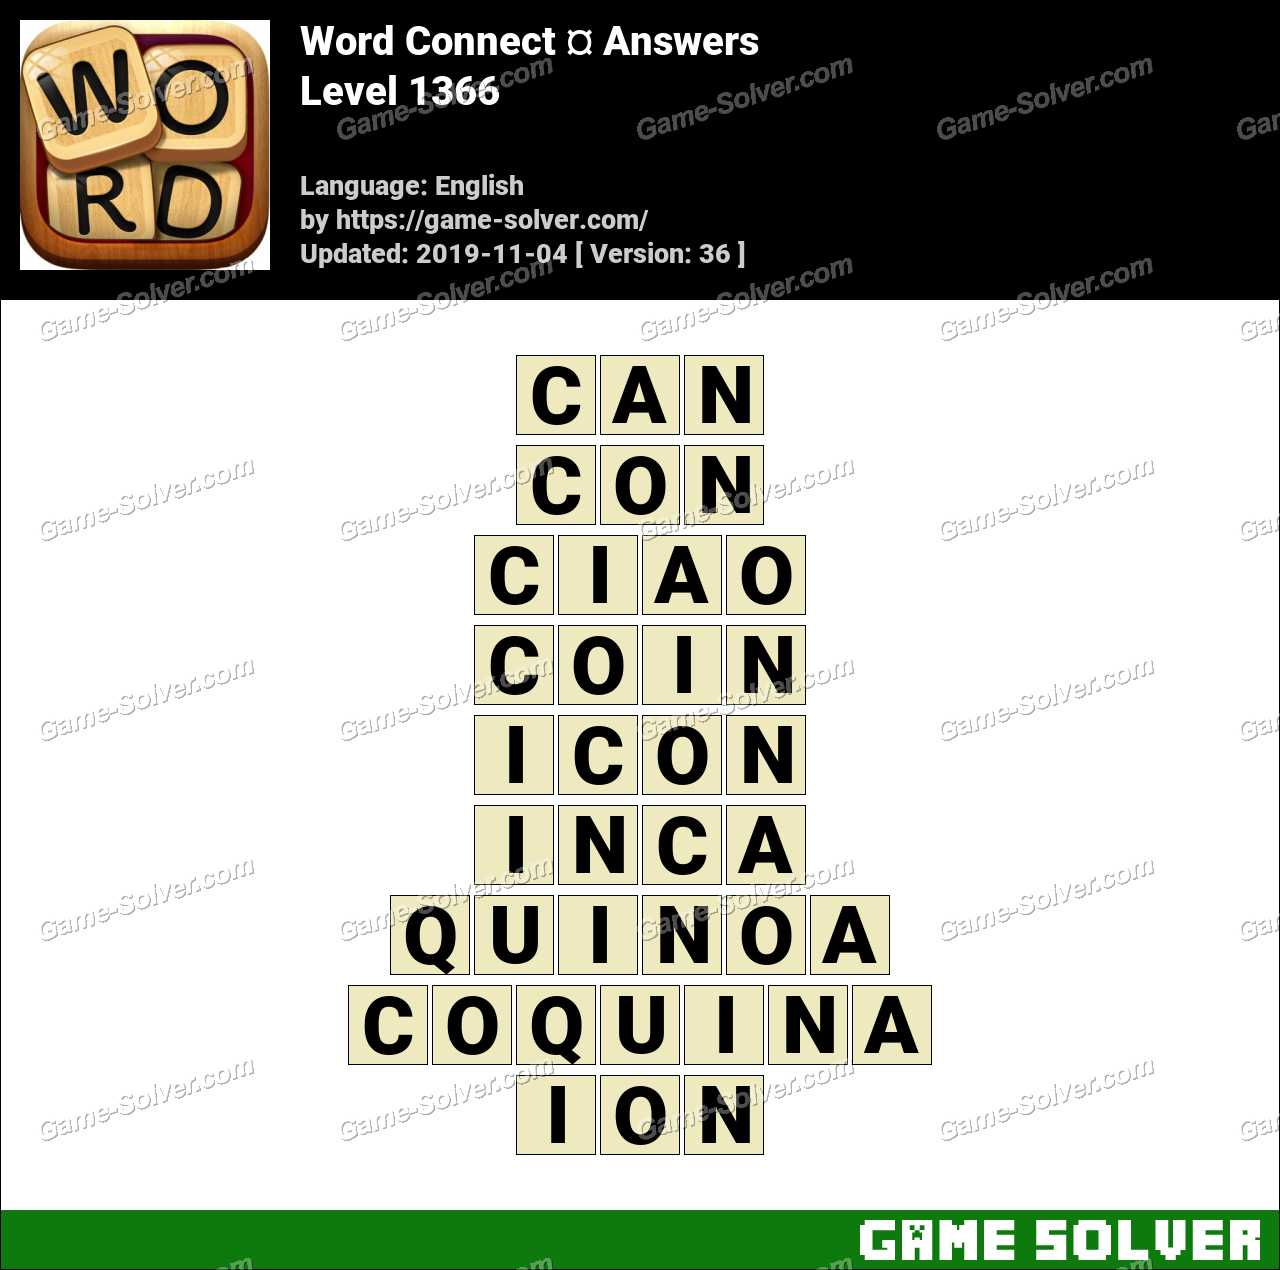 Word Connect Level 1366 Answers